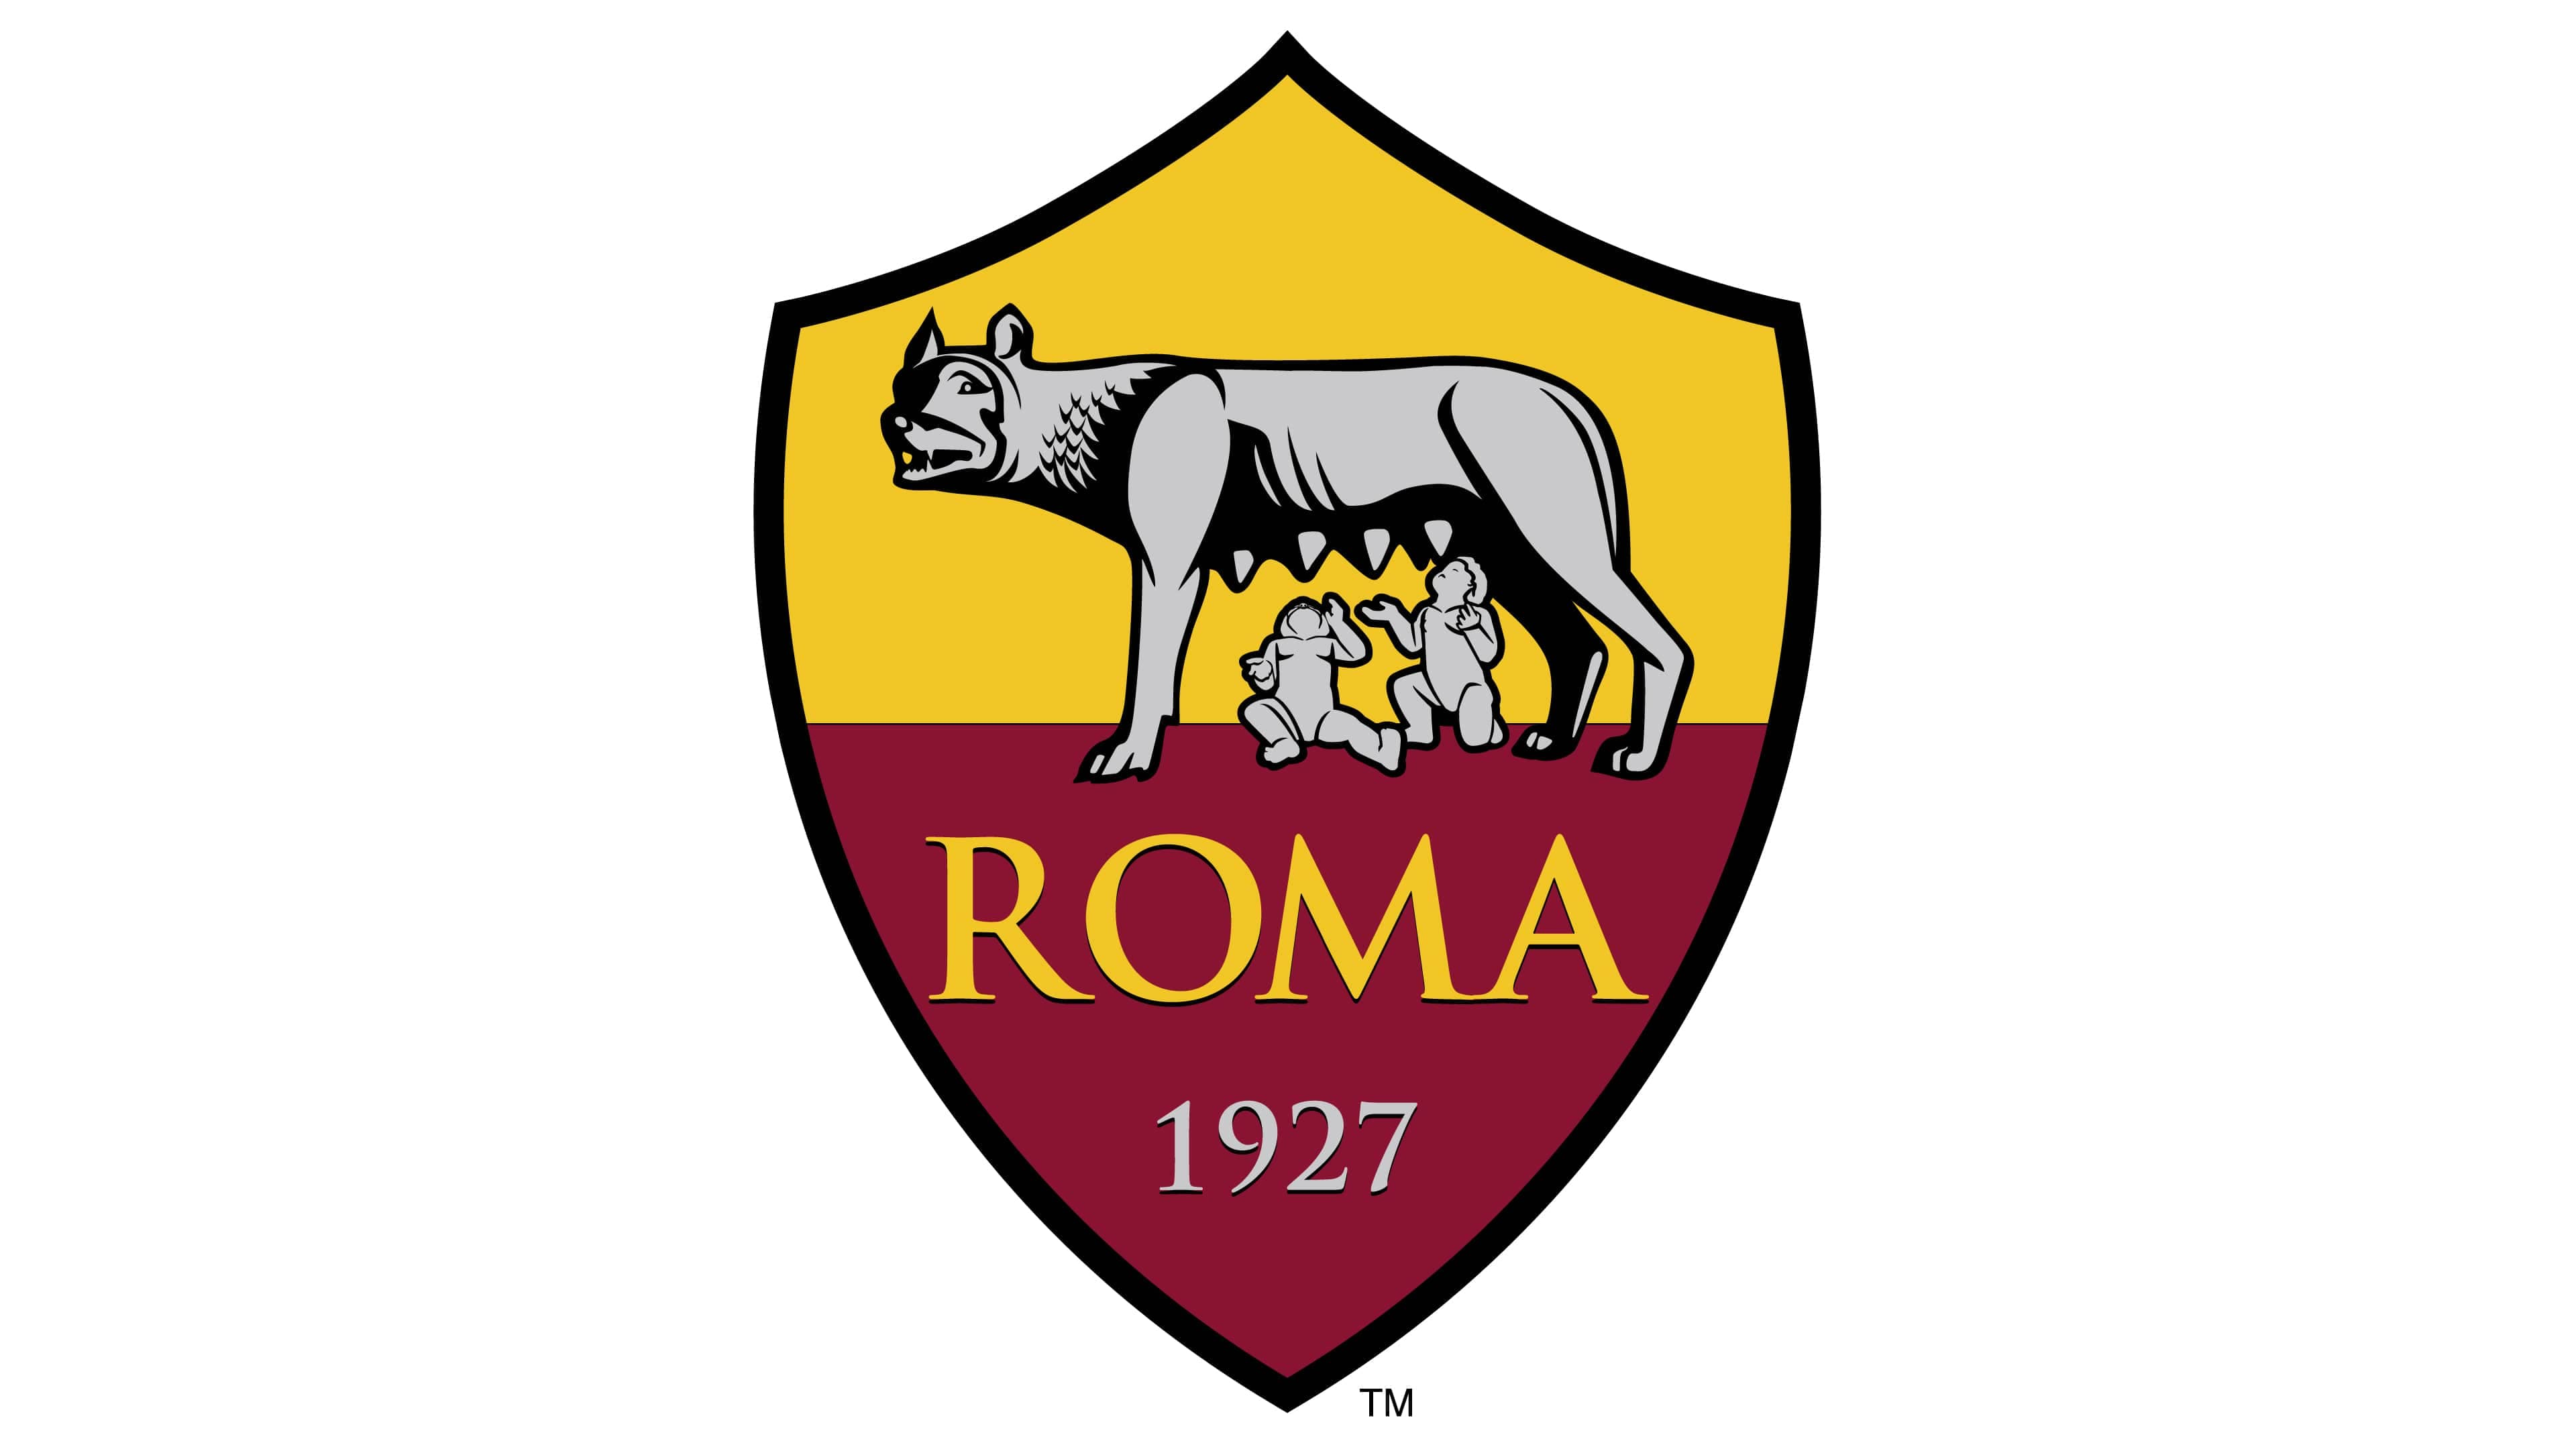 Roma Logo The Most Famous Brands And Company Logos In The World